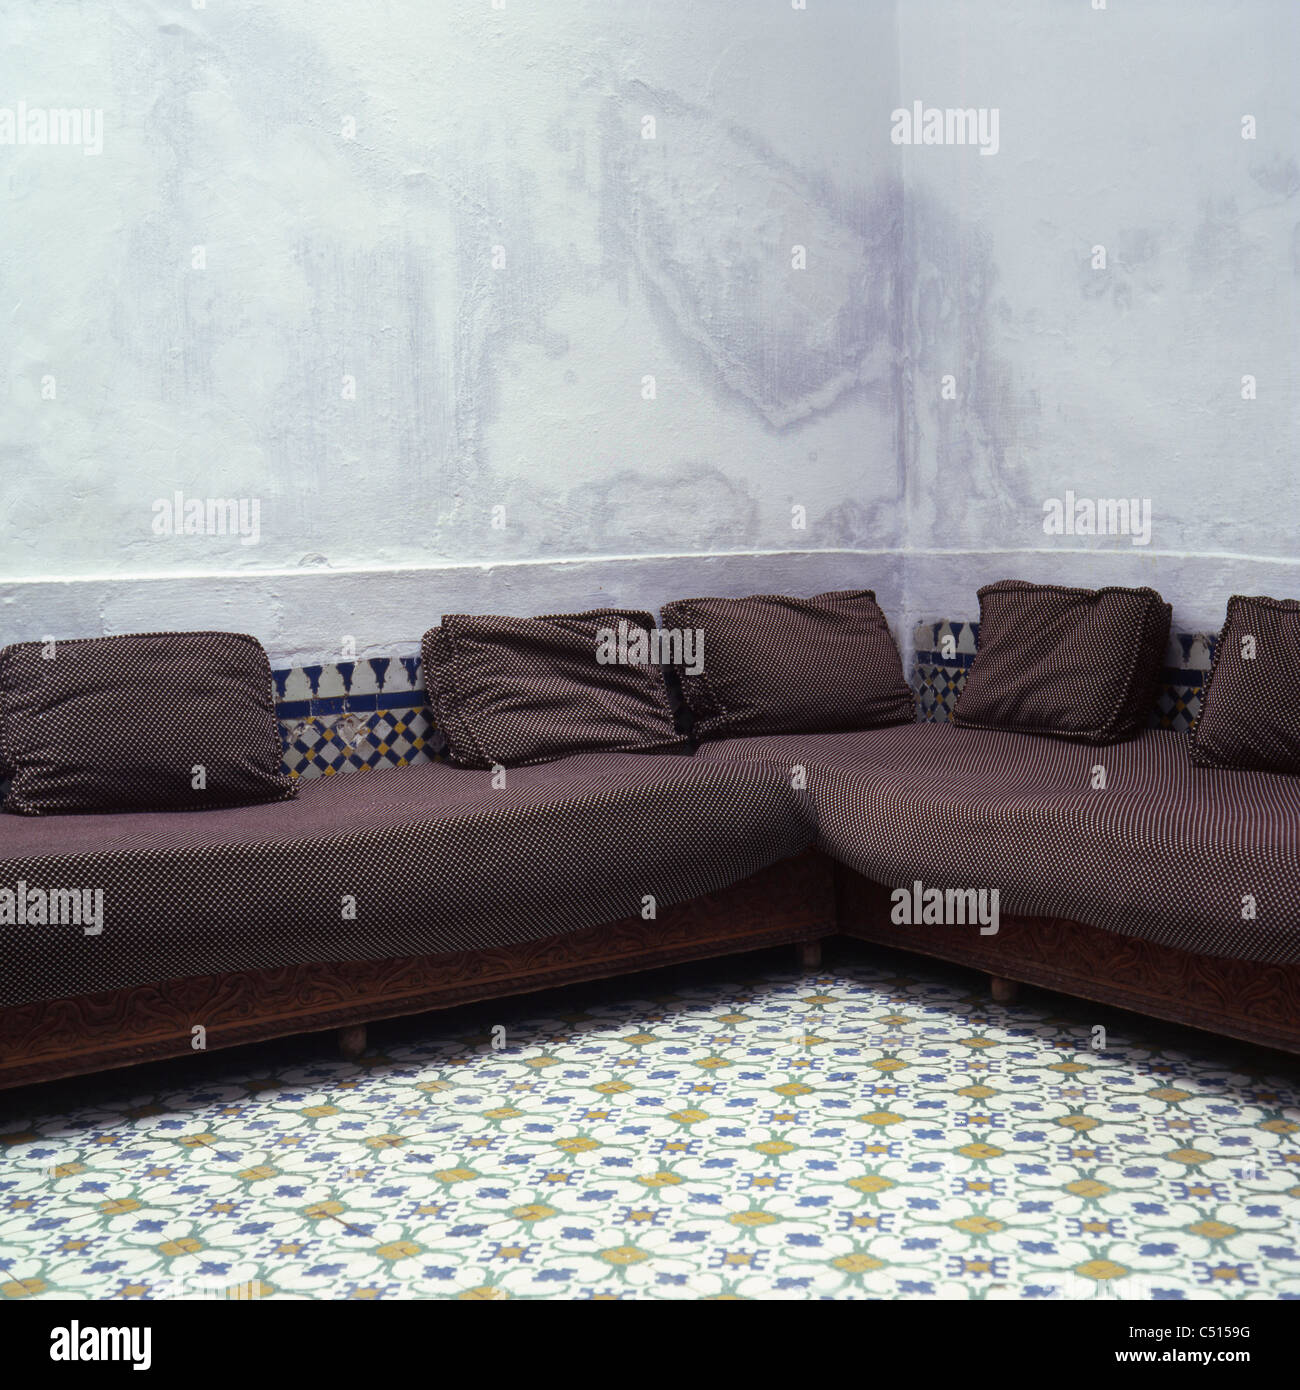 Couch in corner of room with tiled floor Stock Photo